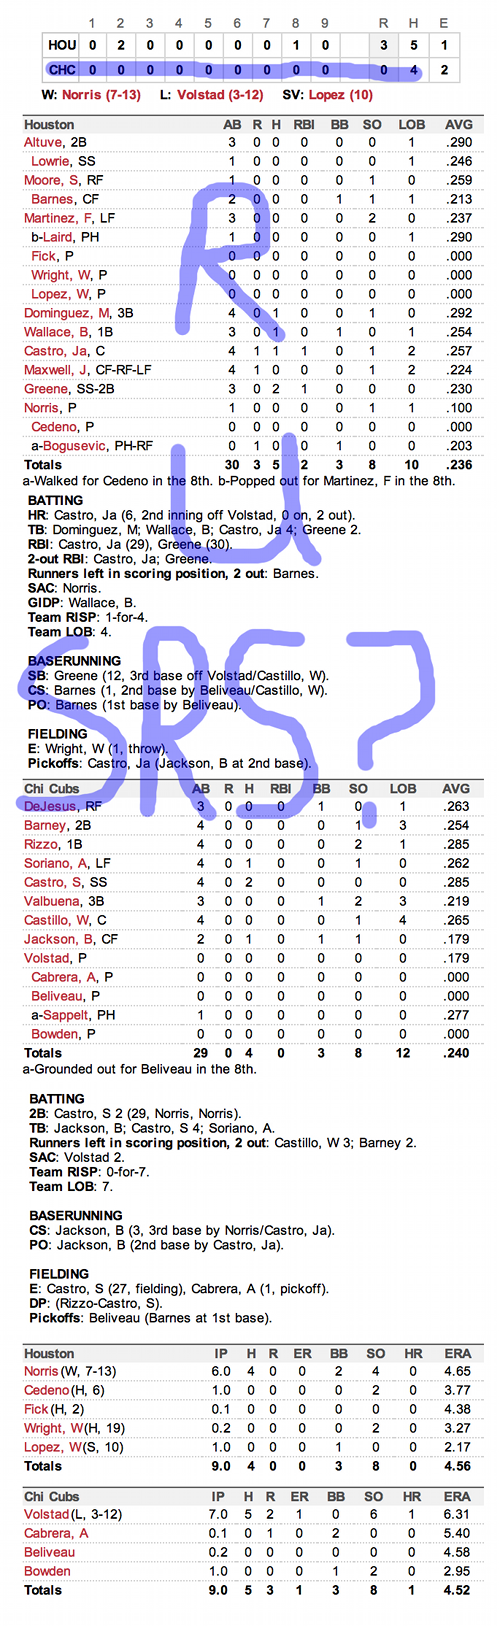 Enhanced Box Score: Astros 3, Cubs 0 – October 2, 2012